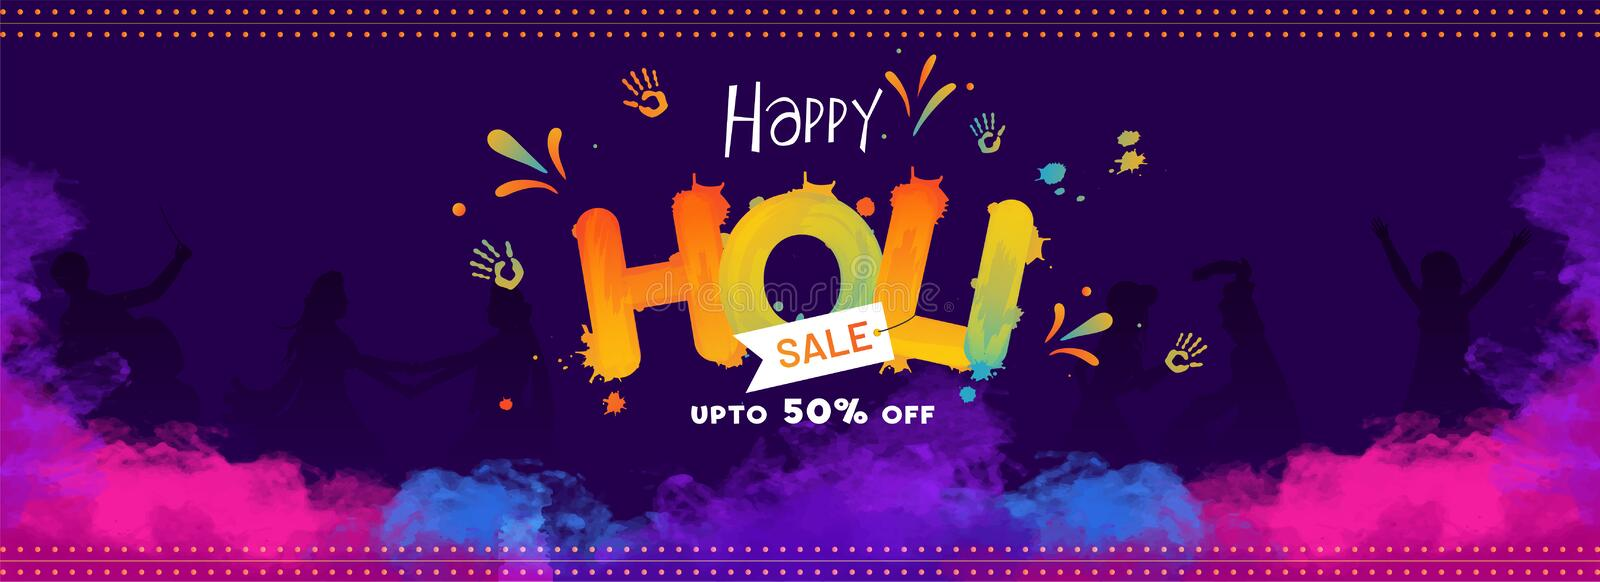 Creative text happy holi on blue background with 50% discount offer royalty free illustration